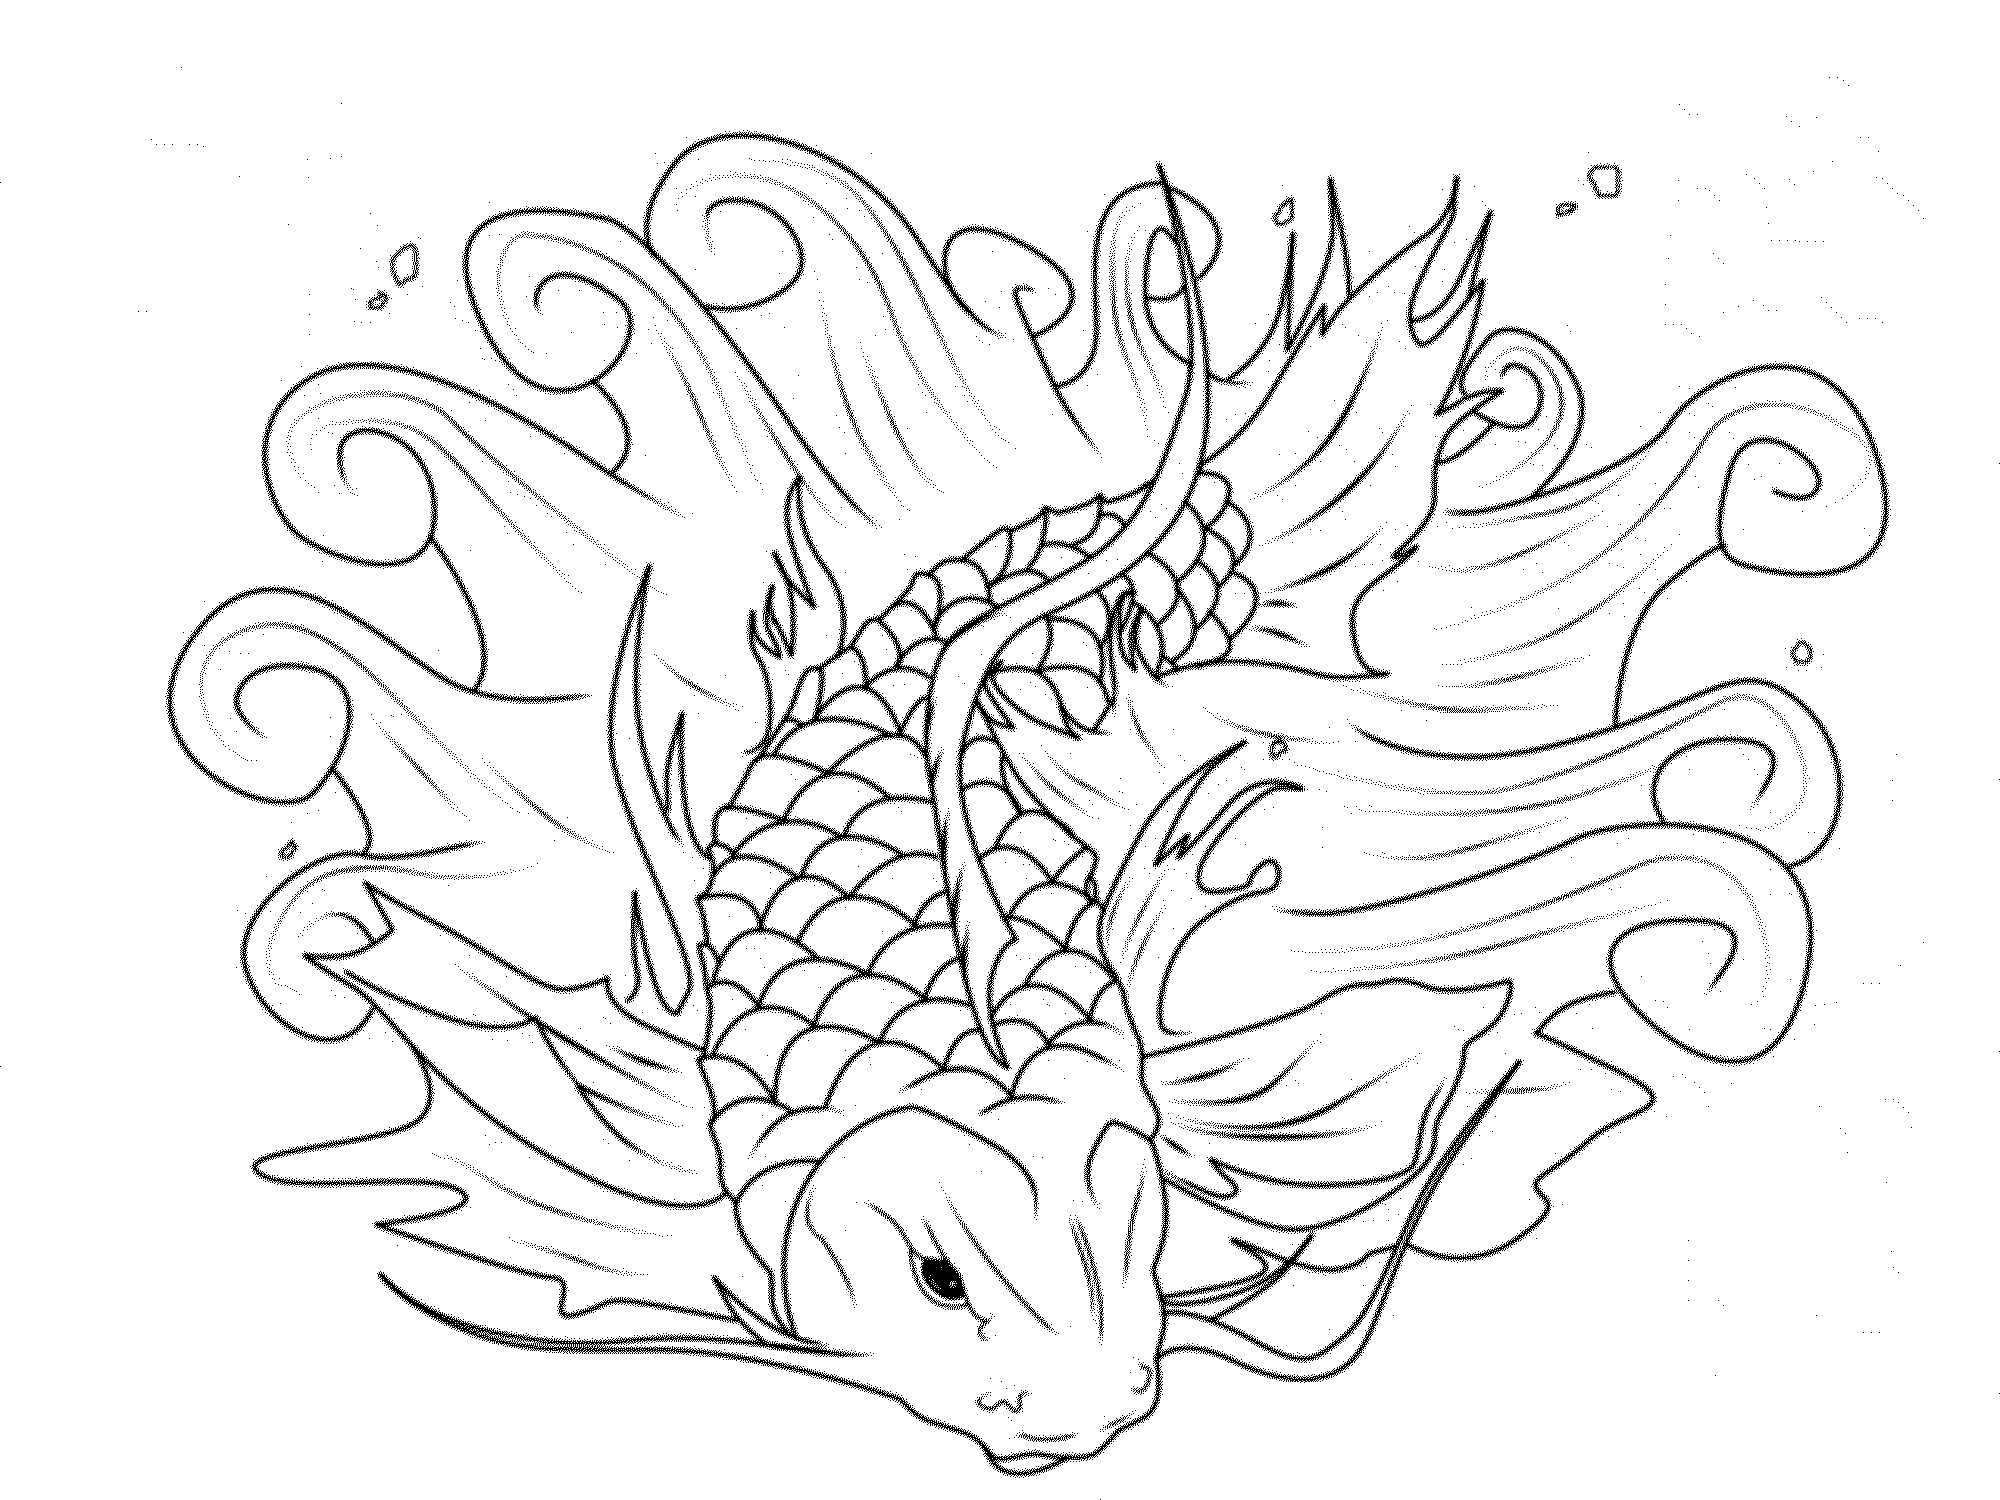 2000x1500 Koi Coloring Pages For Adults Koi Fish Coloring Pages Koi Fish